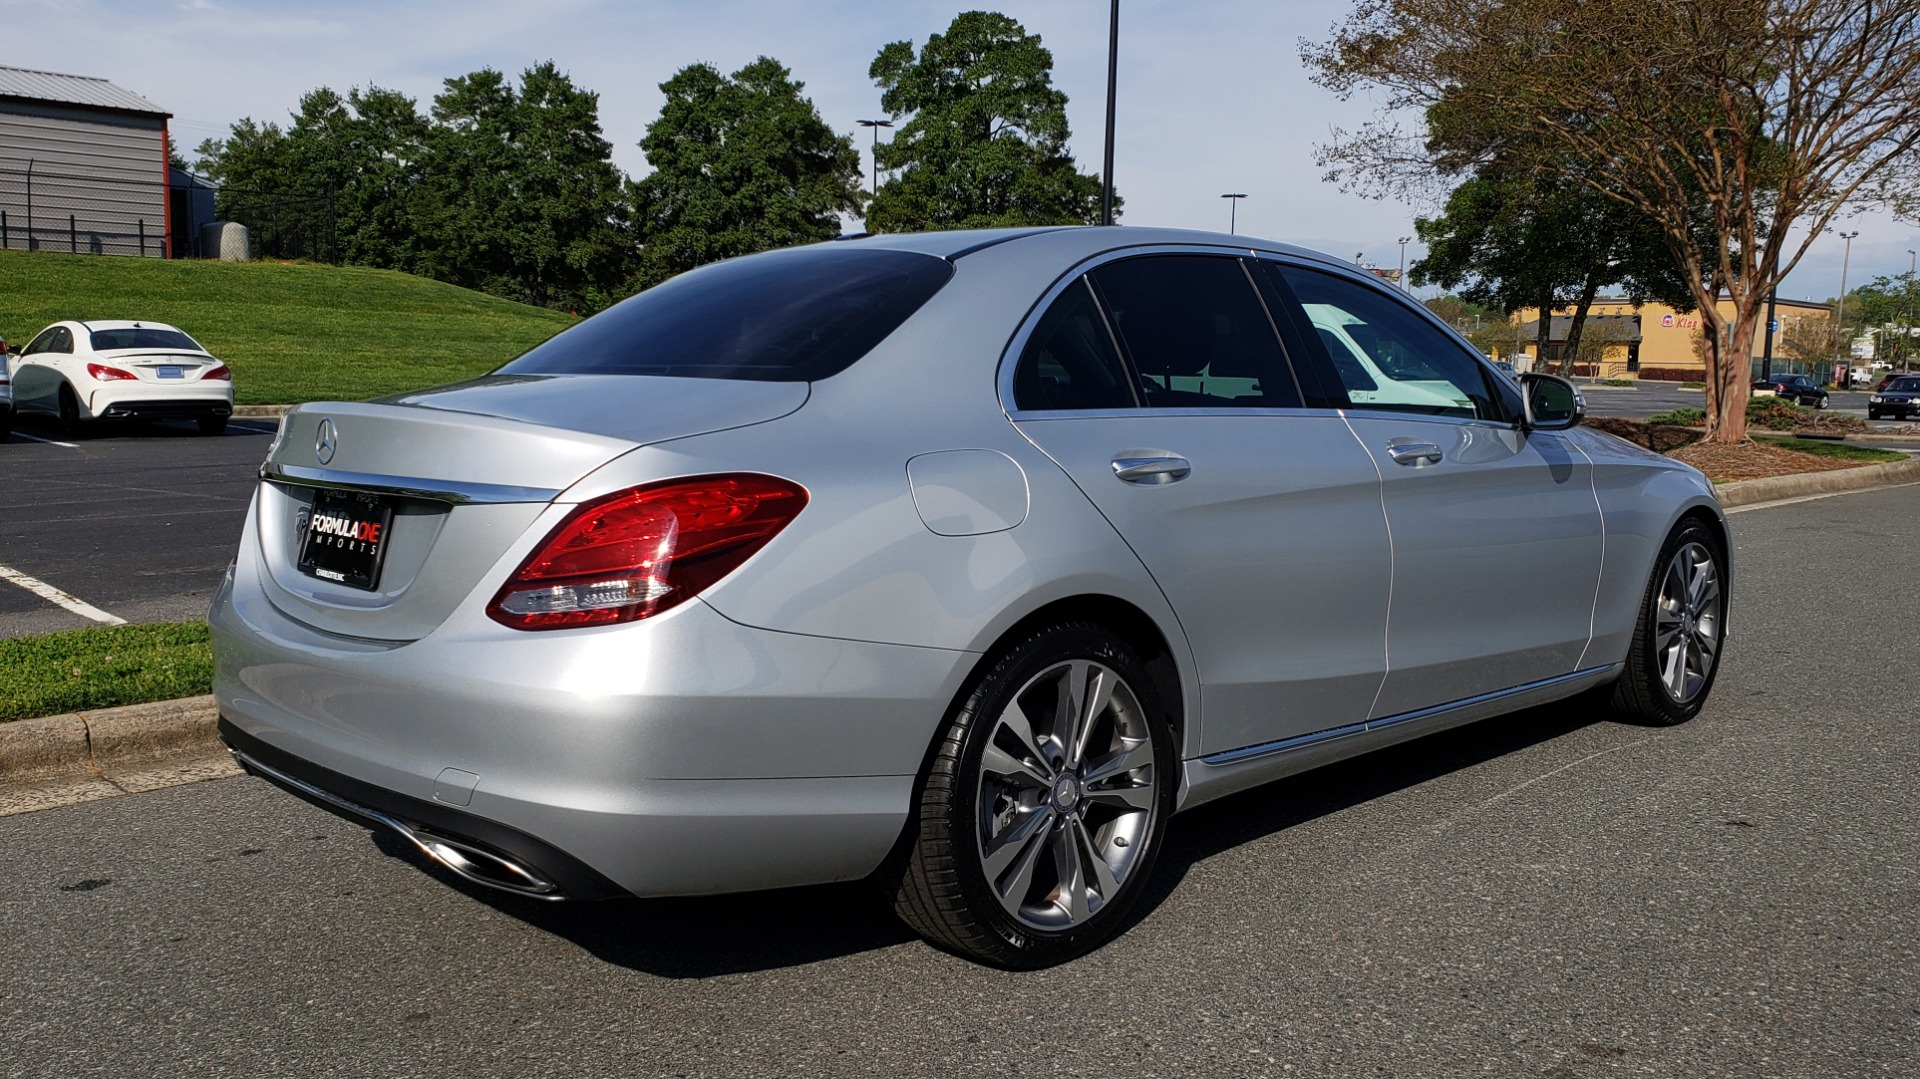 Used 2016 Mercedes-Benz C-CLASS C 300 PREMIUM / NAV / SNRF/ HTD STS / REARVIEW / BSM for sale Sold at Formula Imports in Charlotte NC 28227 6